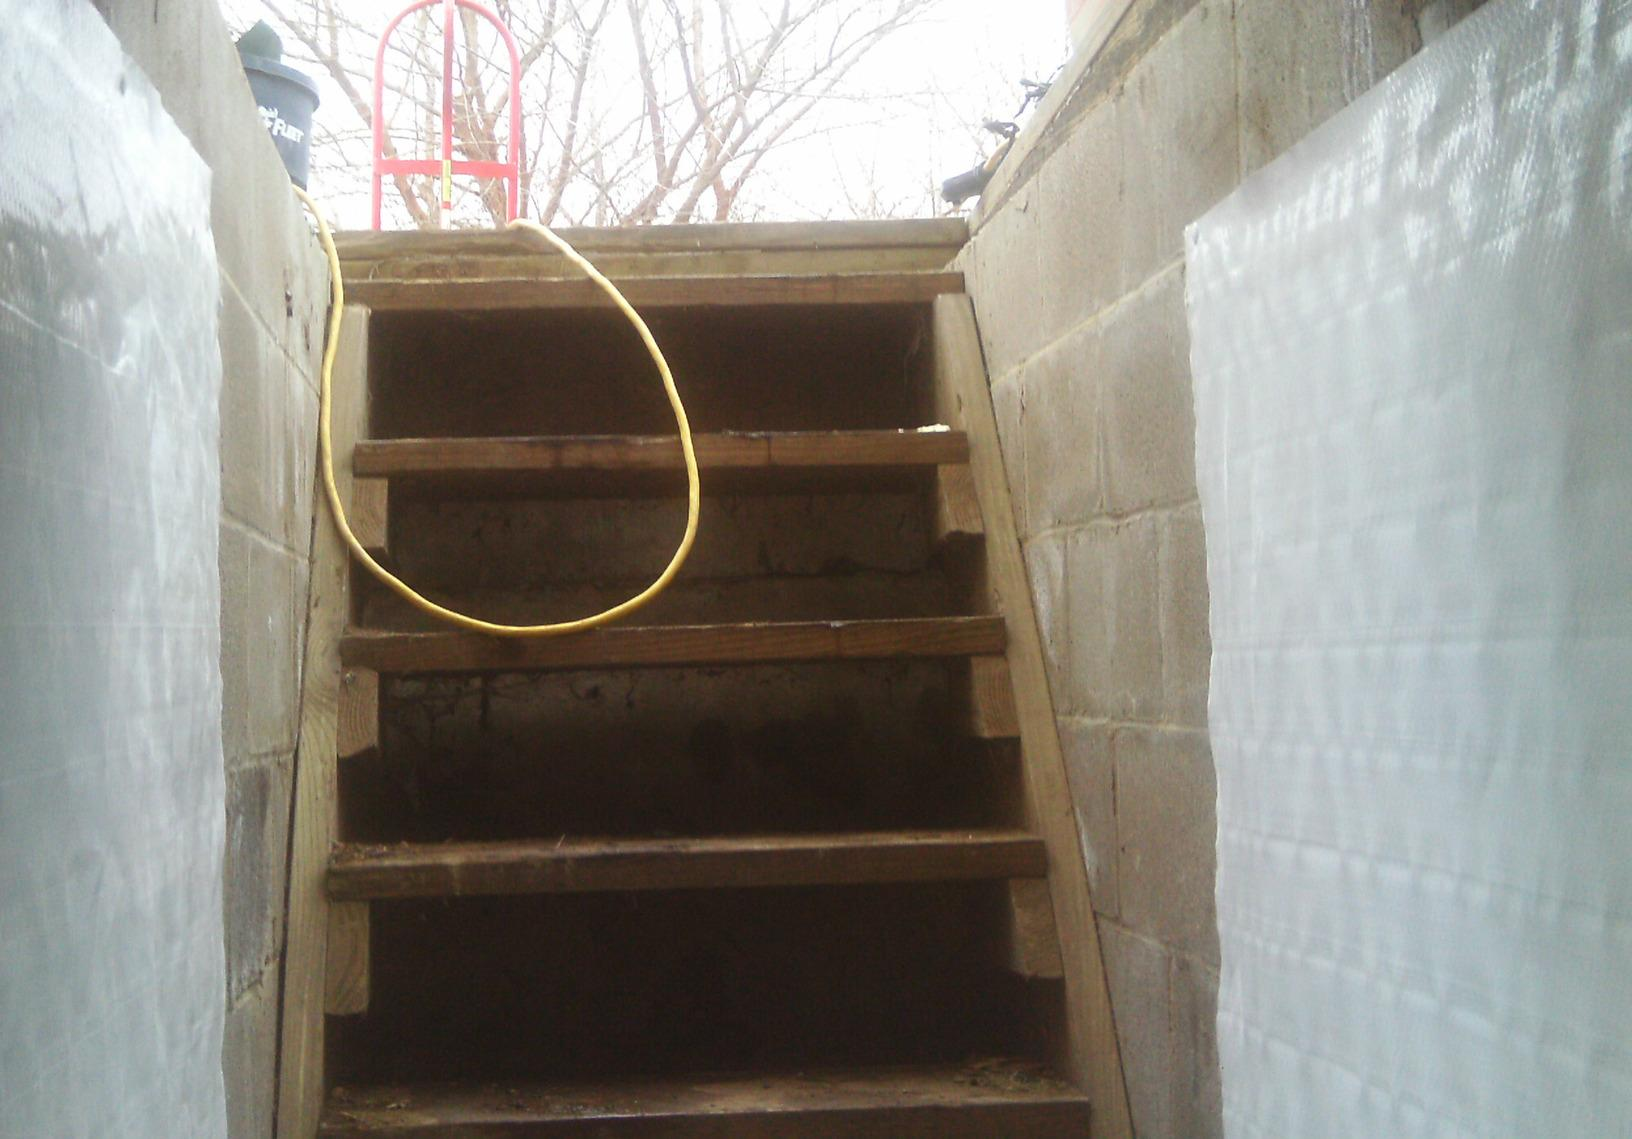 An outside entrance into the crawl space is not just easy access for the homeowner but for water as well.